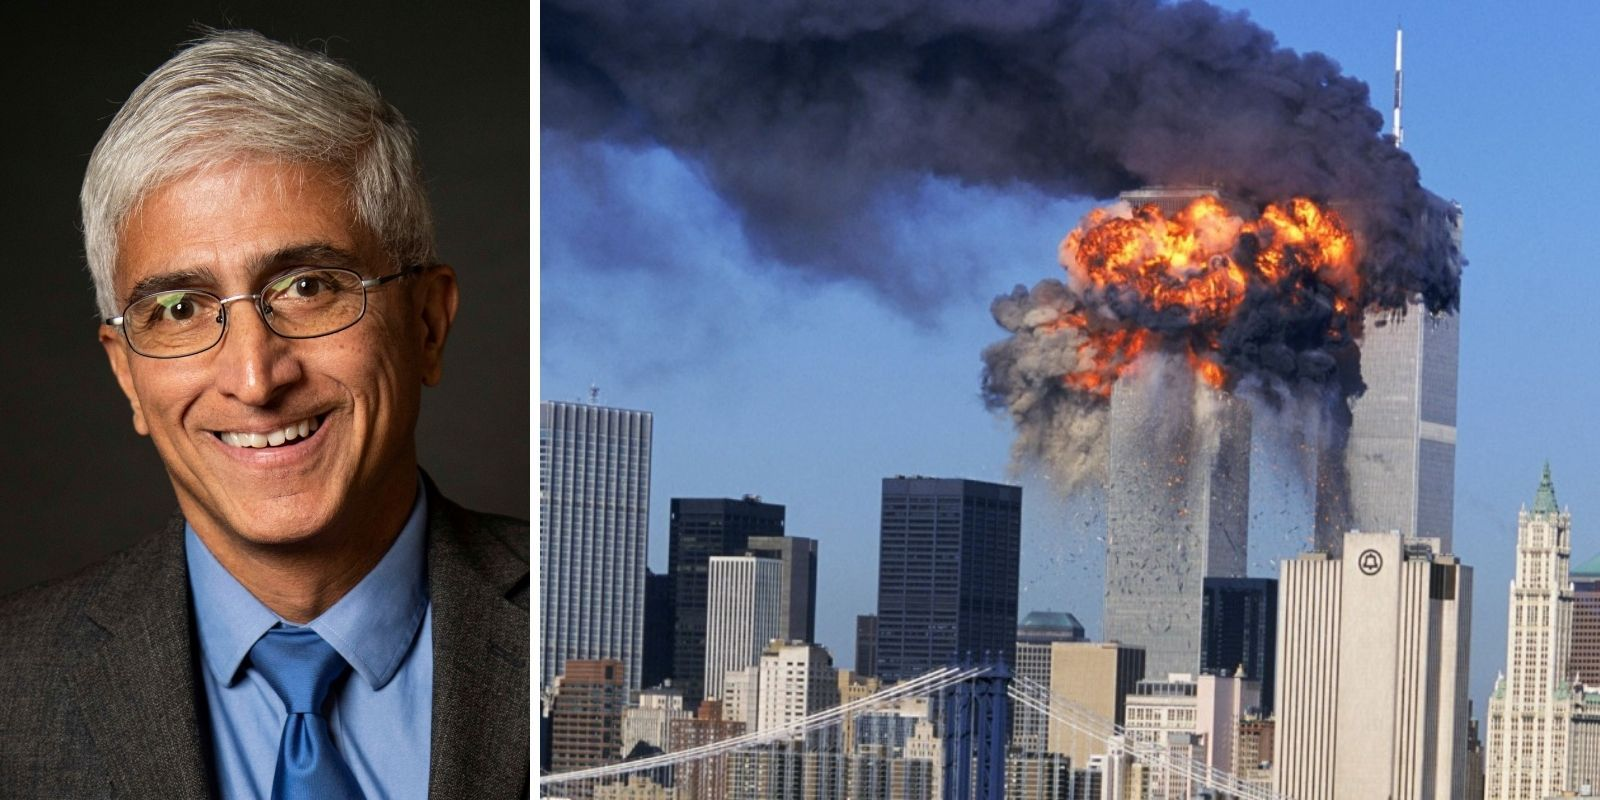 HuffPo reporter claims Capitol riot was '1000 percent worse' than 9/11